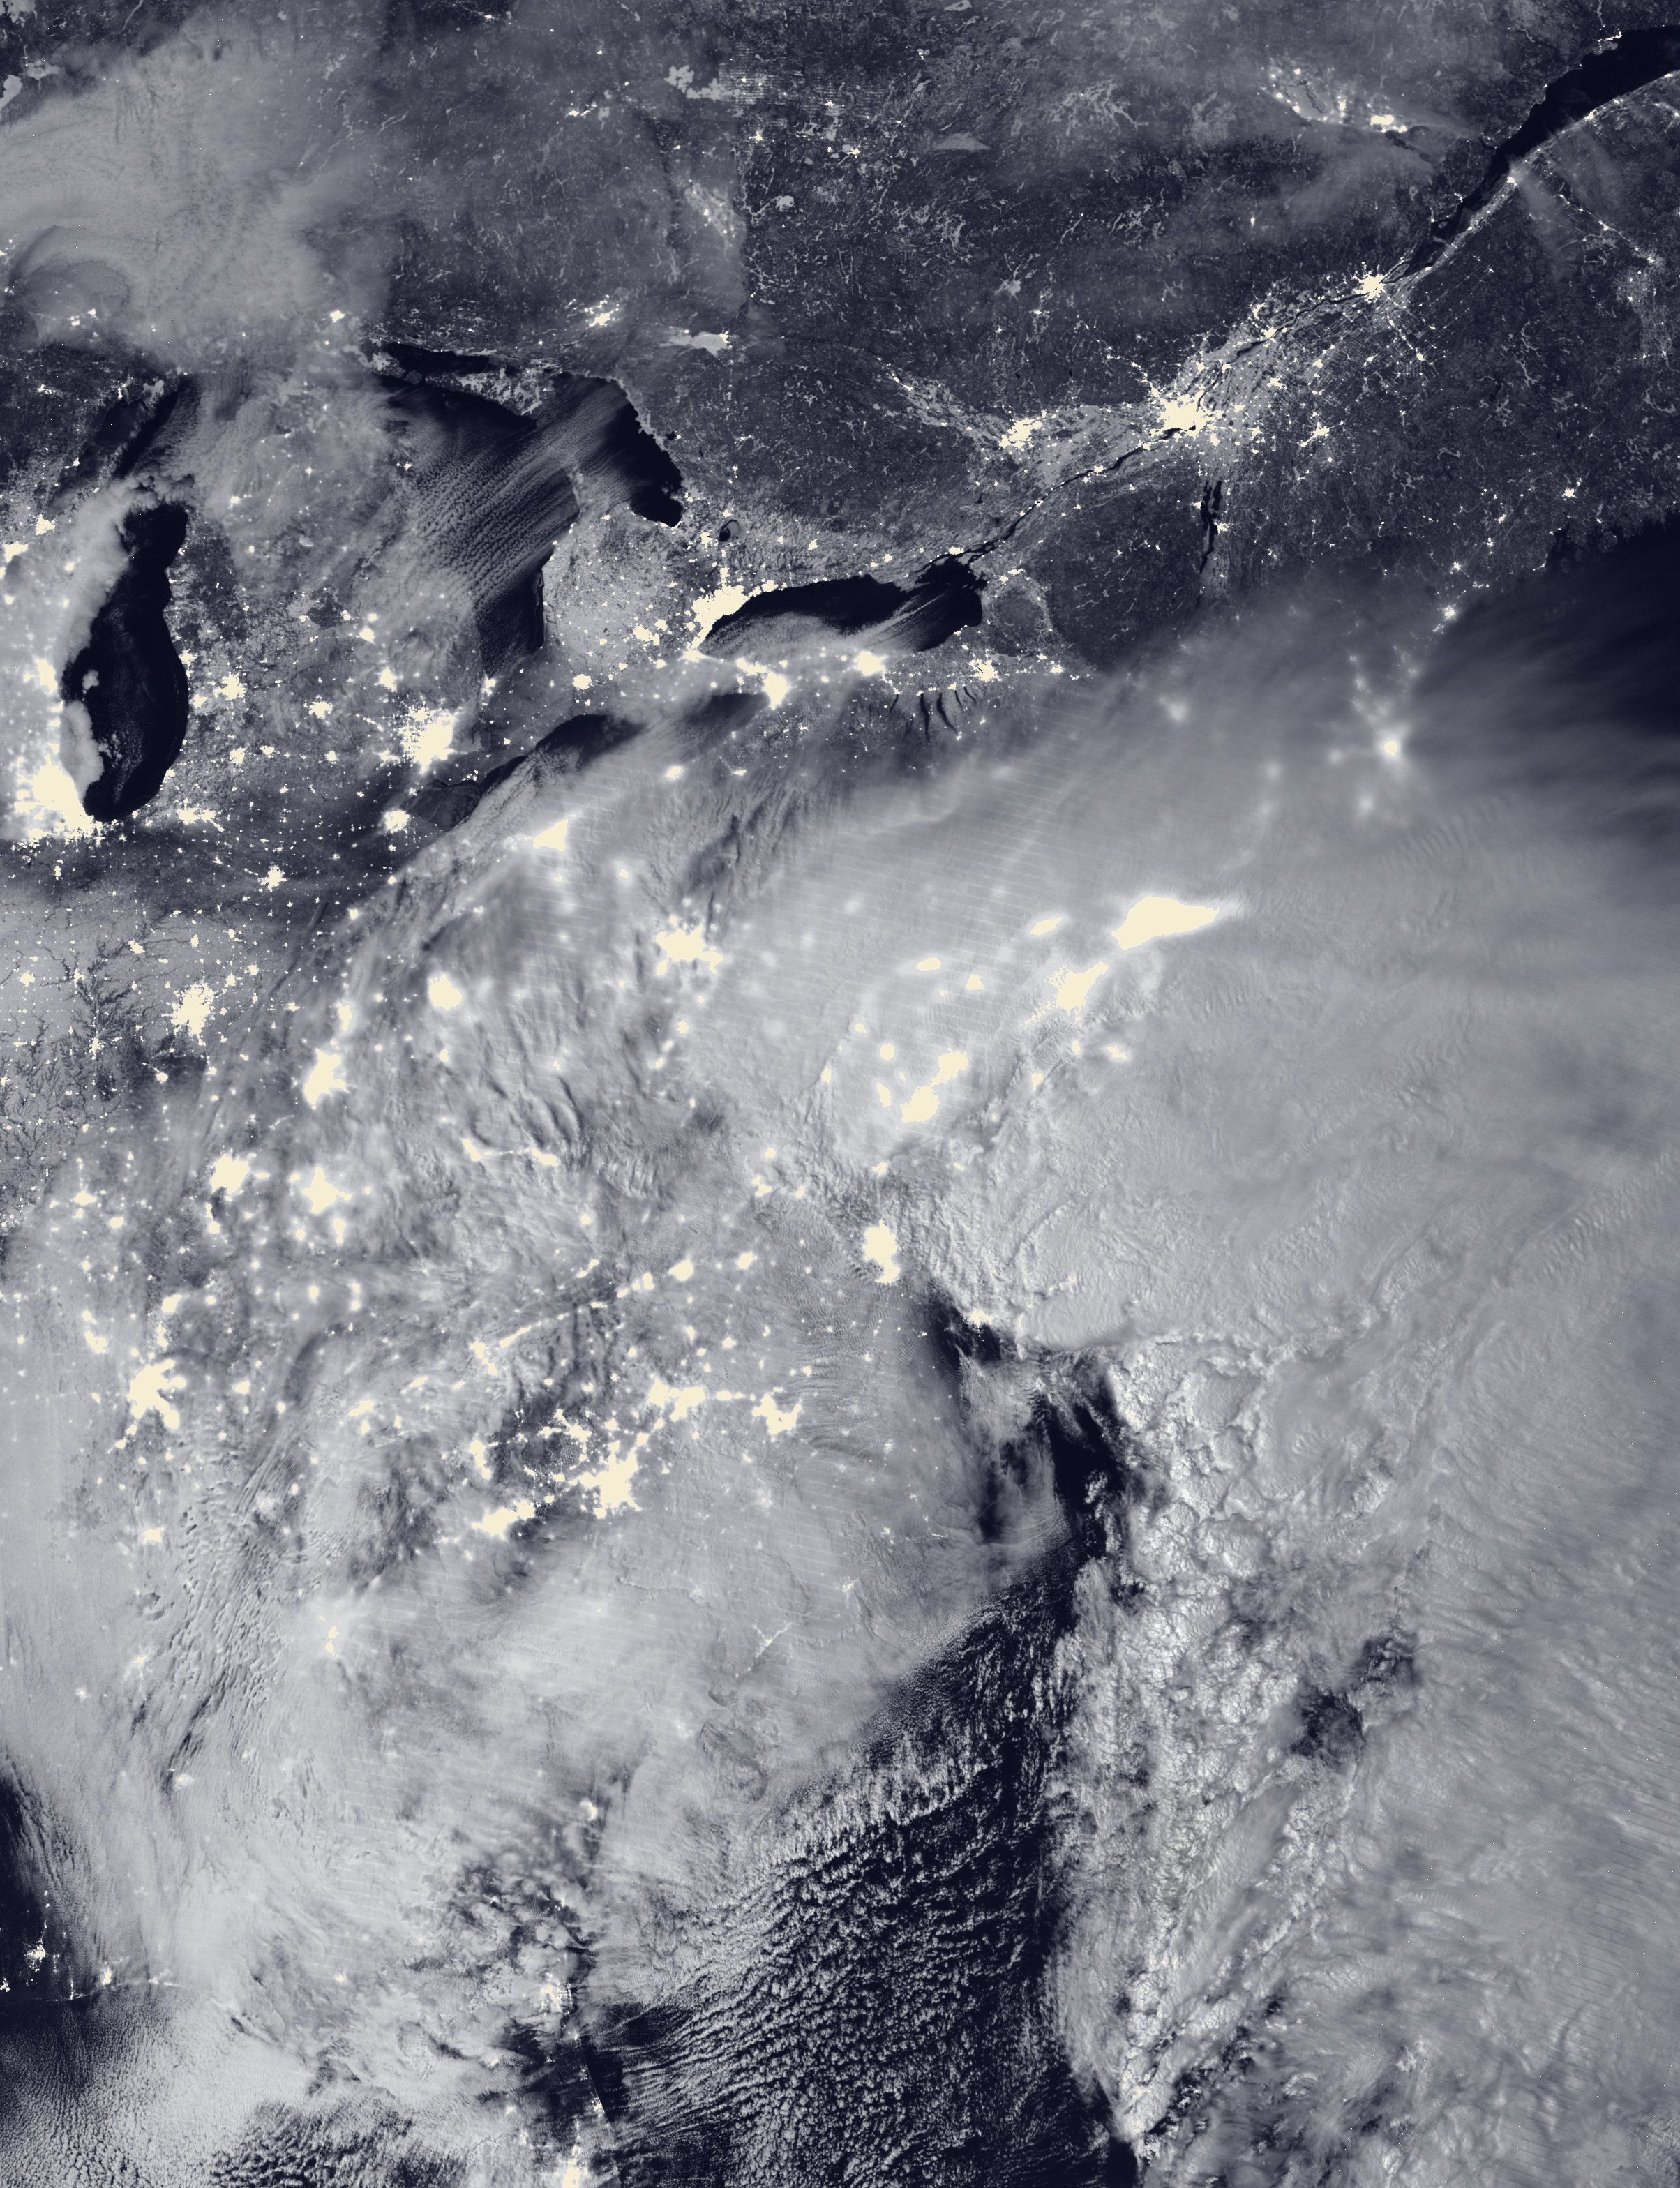 Two low-pressure systems are seen merging over the East Coast around 2 a.m. Saturday in this satellite image.